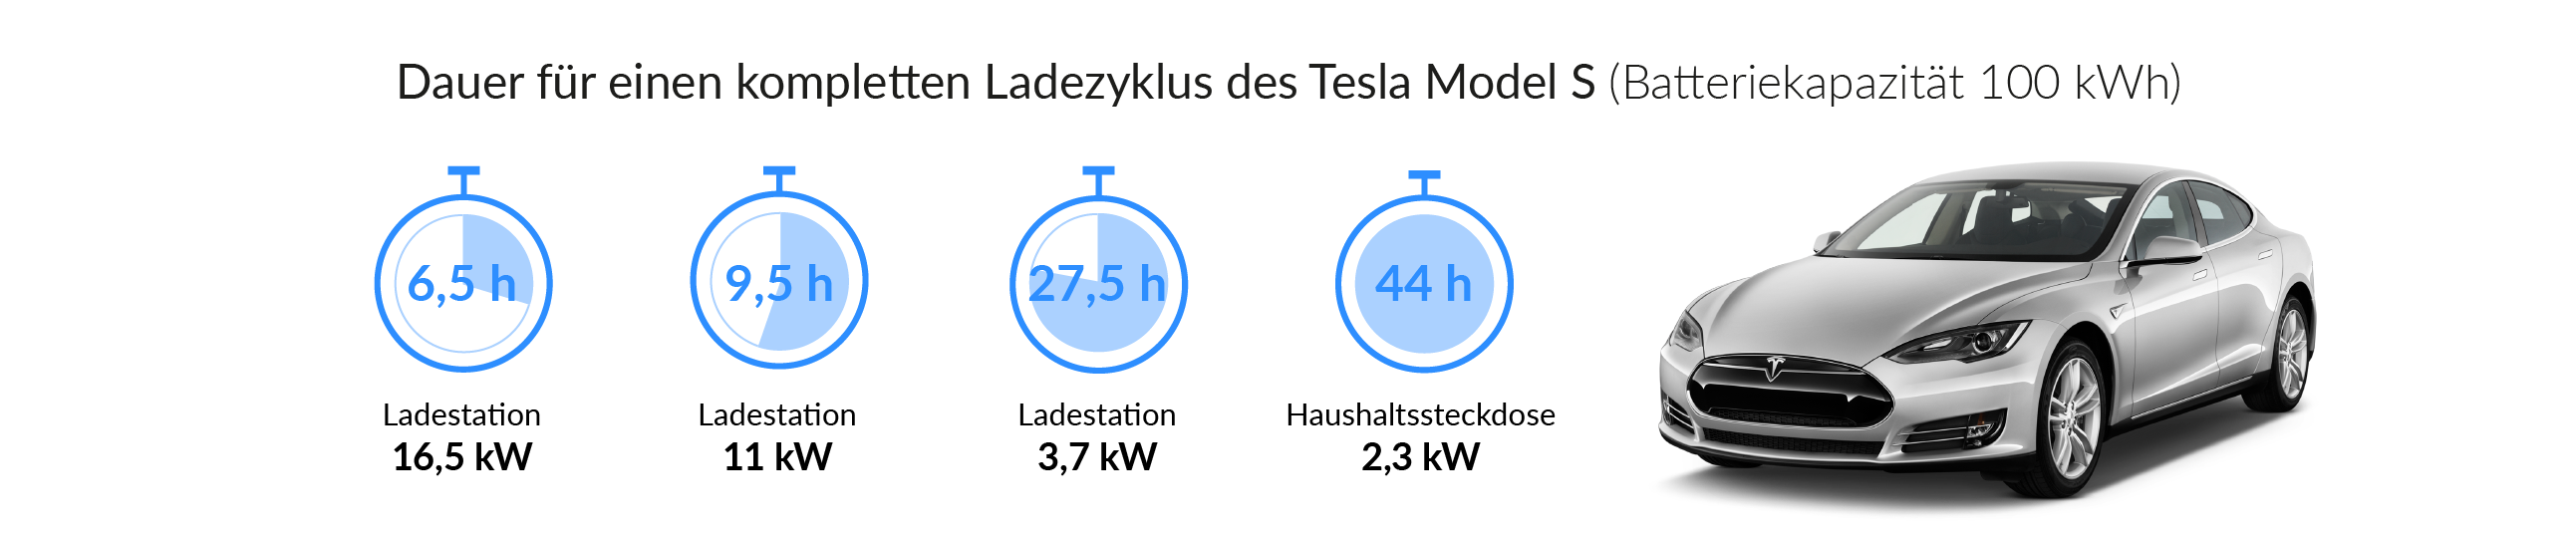 Ladezeiten Tesla Model S